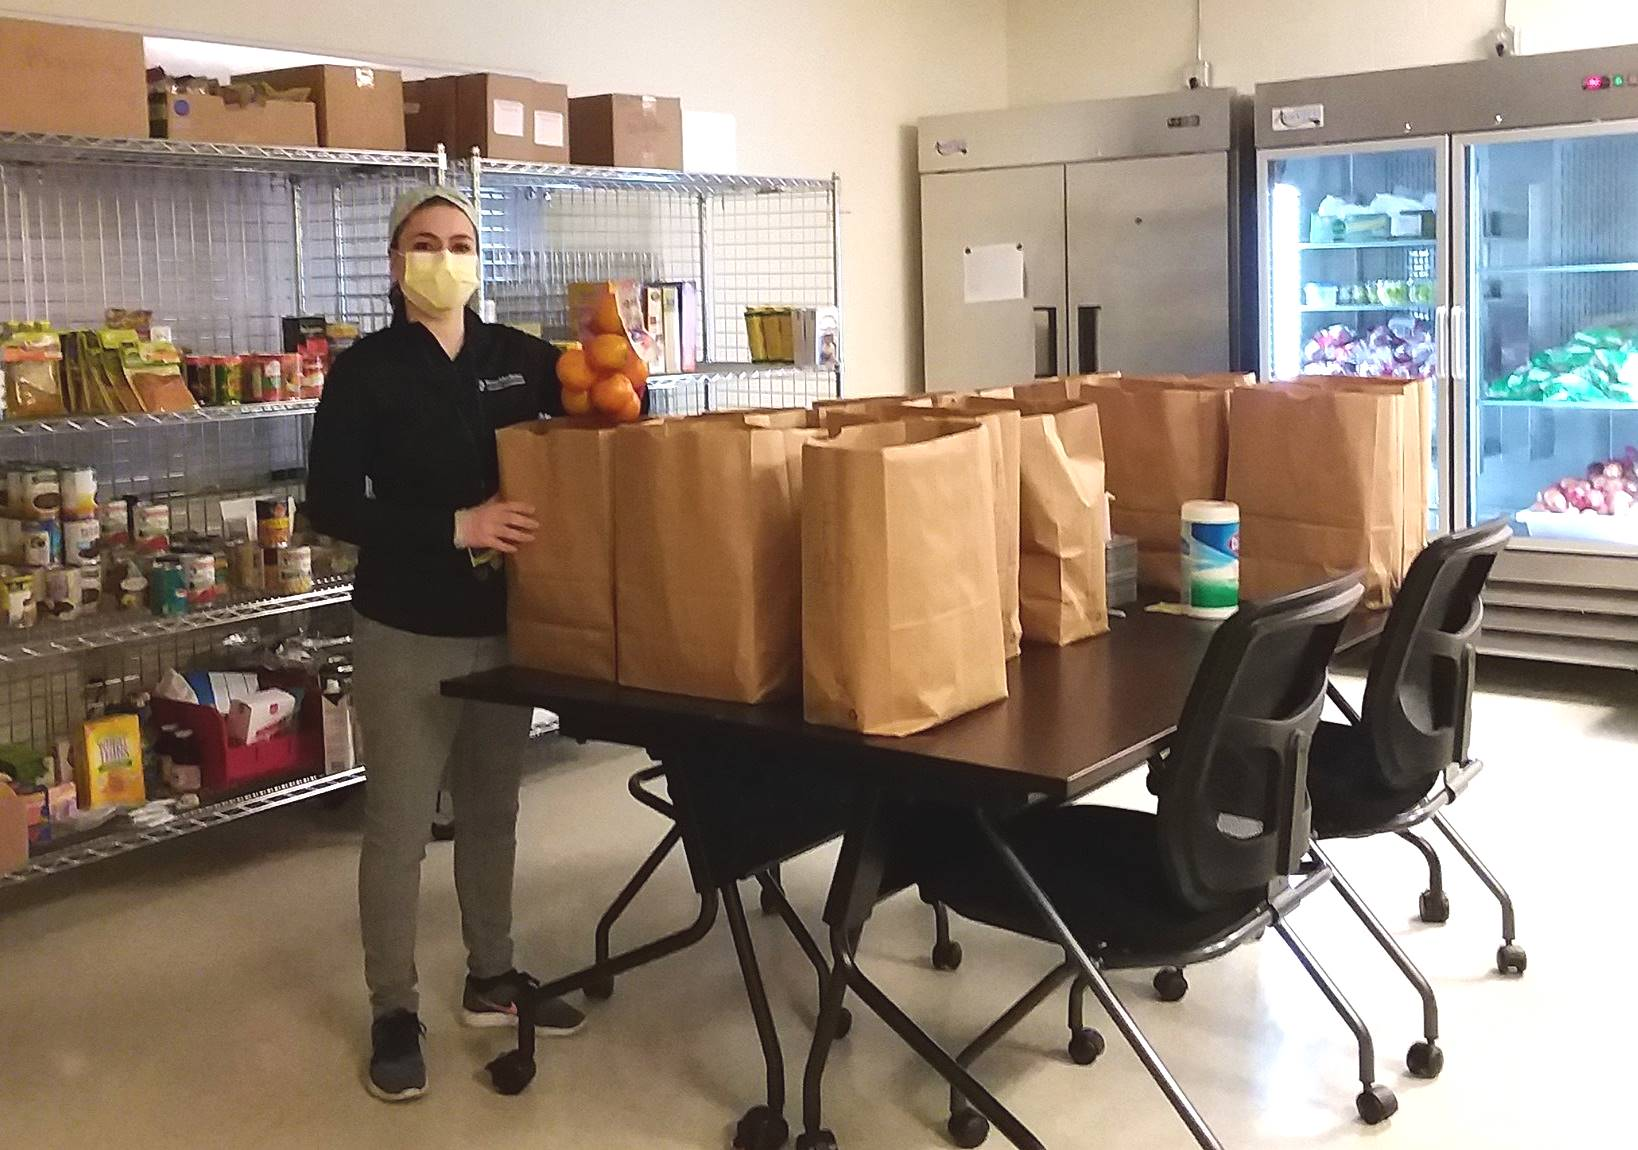 Dietician Laura Sahd wears a mask at the Lancaster County Food Hub. Sahd, of Penn Medicine Lancaster General Health, is community dietician for Food Farmacy, a nutrition counseling pilot program for at-risk individuals. (Photo provided by Lancaster County Food Hub)